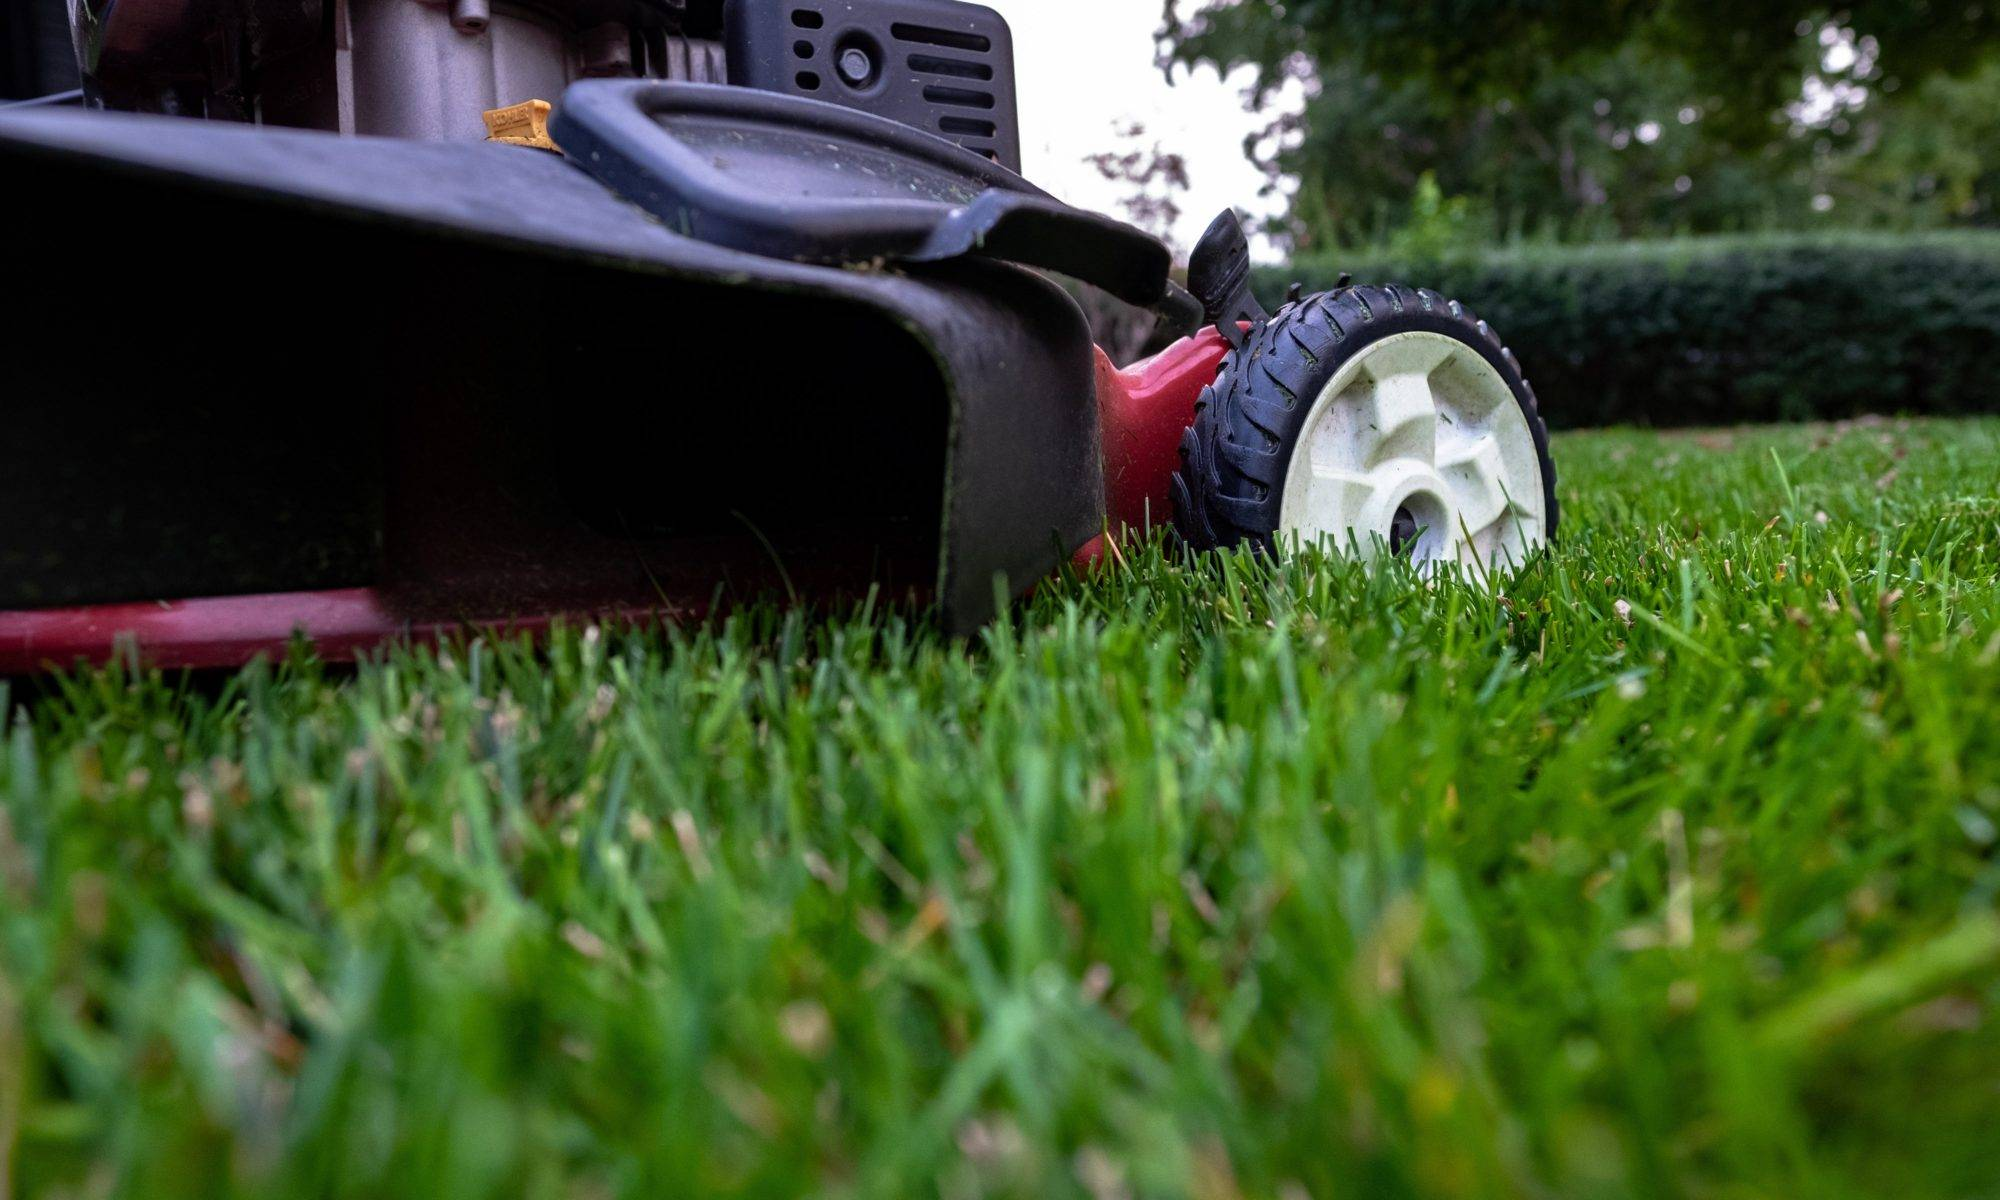 Perth Garden Maintenance Mowing, Lawn Care, Pruning, weeding, fertilising, mulching